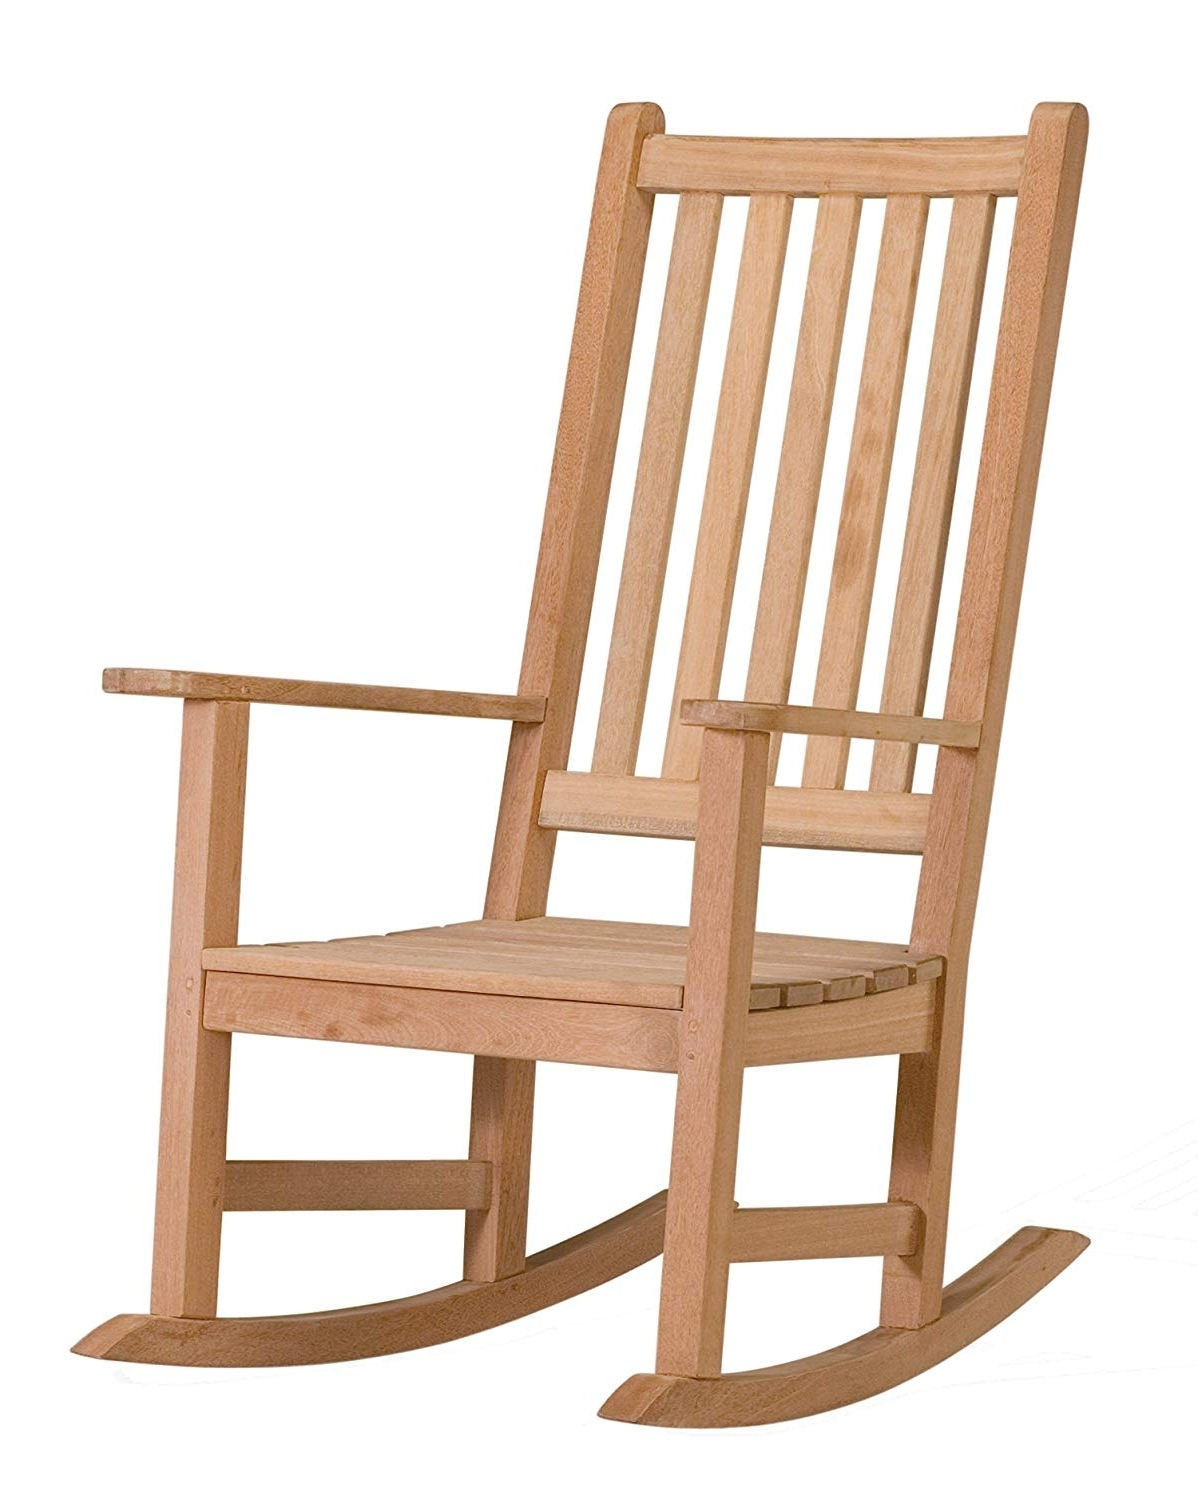 Amazon : Oxford Garden Franklin Shorea Rocking Chair : Patio Within Most Current Outdoor Rocking Chairs (View 2 of 15)